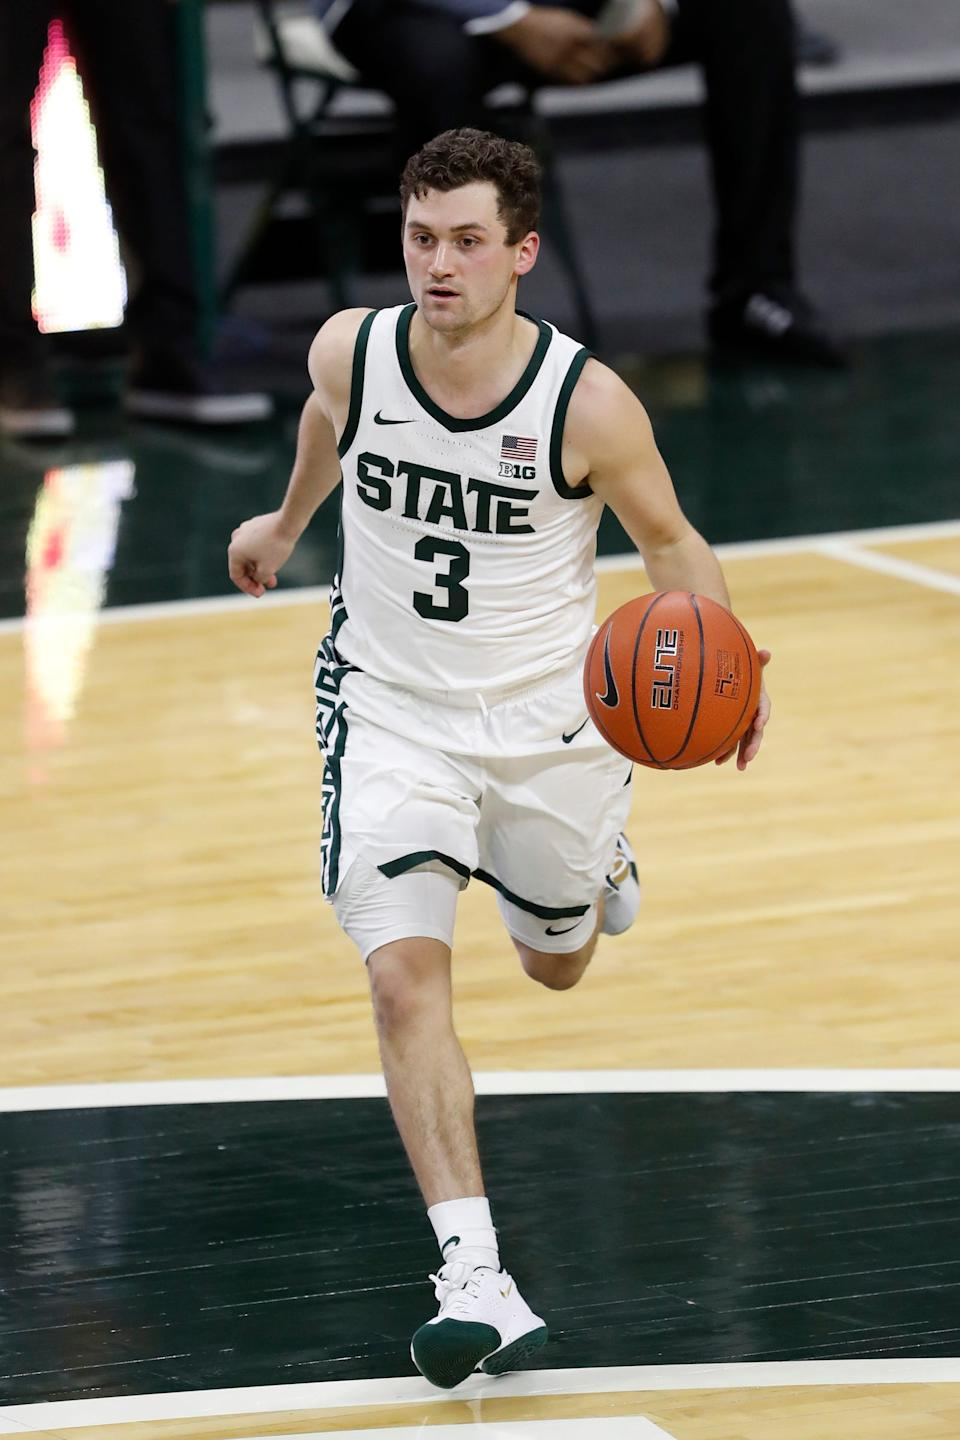 Michigan State's Foster Loyer dribbles the ball during the second half against Eastern Michigan, Nov. 25, 2020 in East Lansing.